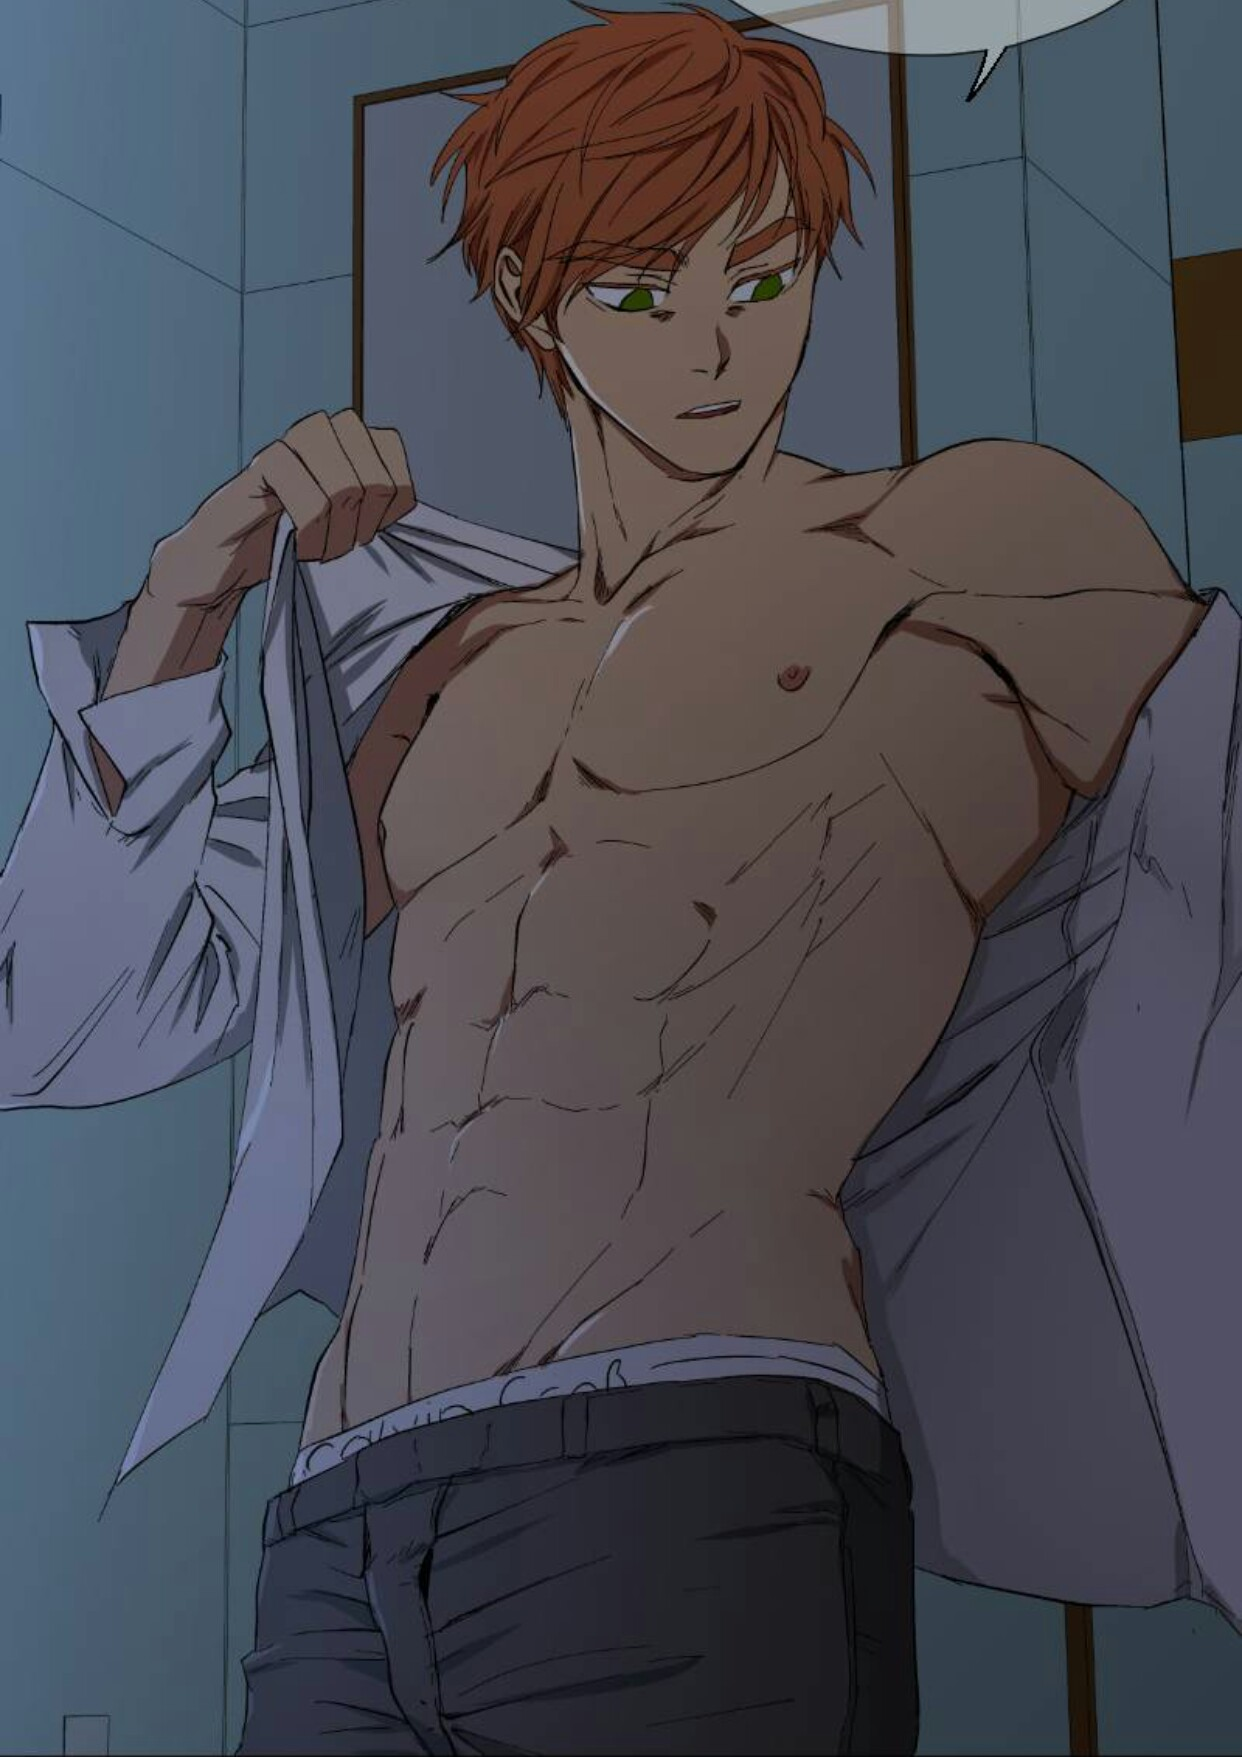 Webtoon Hot Anime Animeguy Iloveyouu Cute Abs